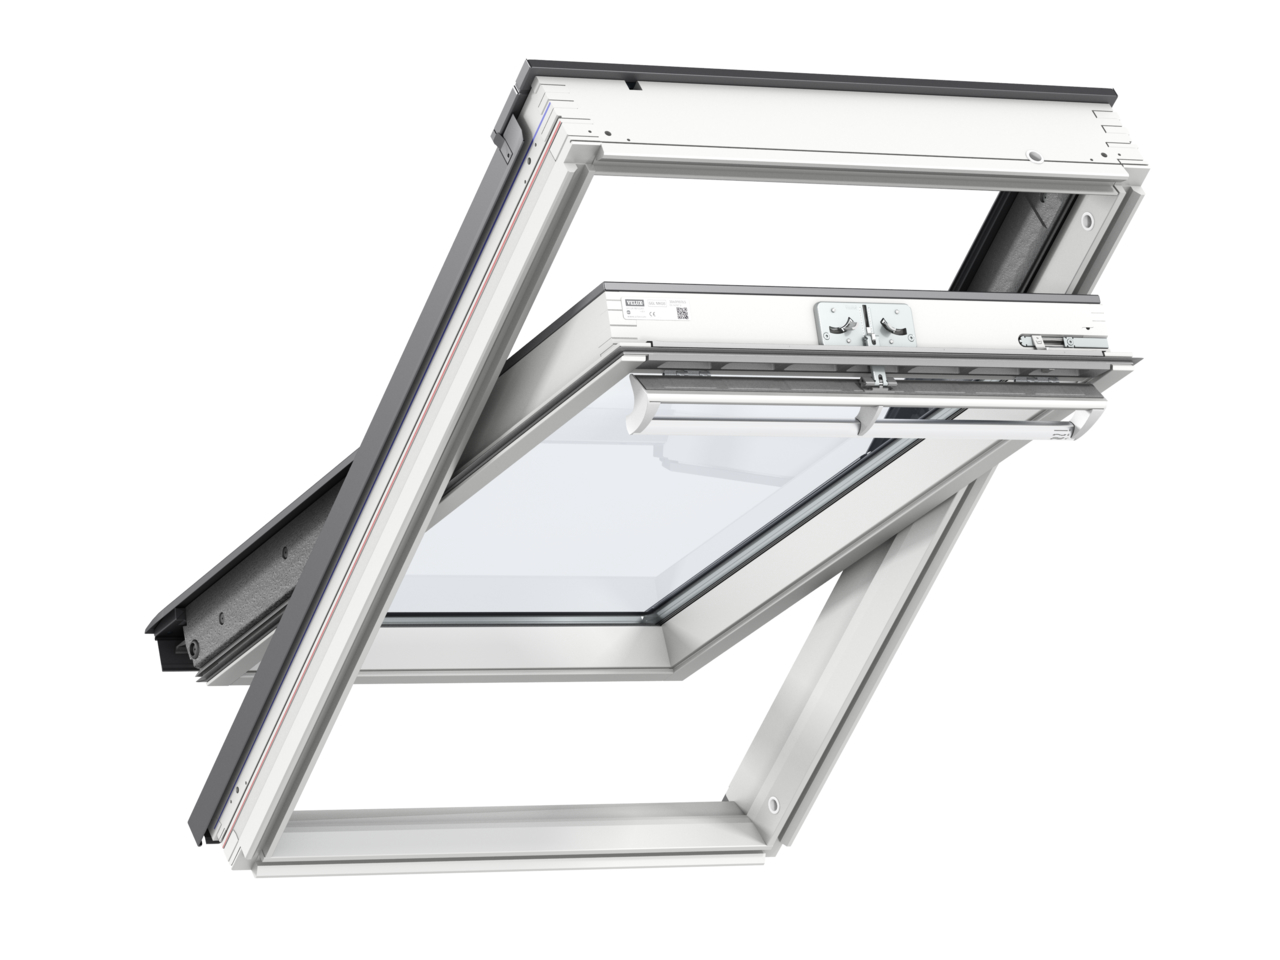 Velux GGL MK06 780 x 1180mm Centre Pivot Standard 70Pane Roof Window - White Painted